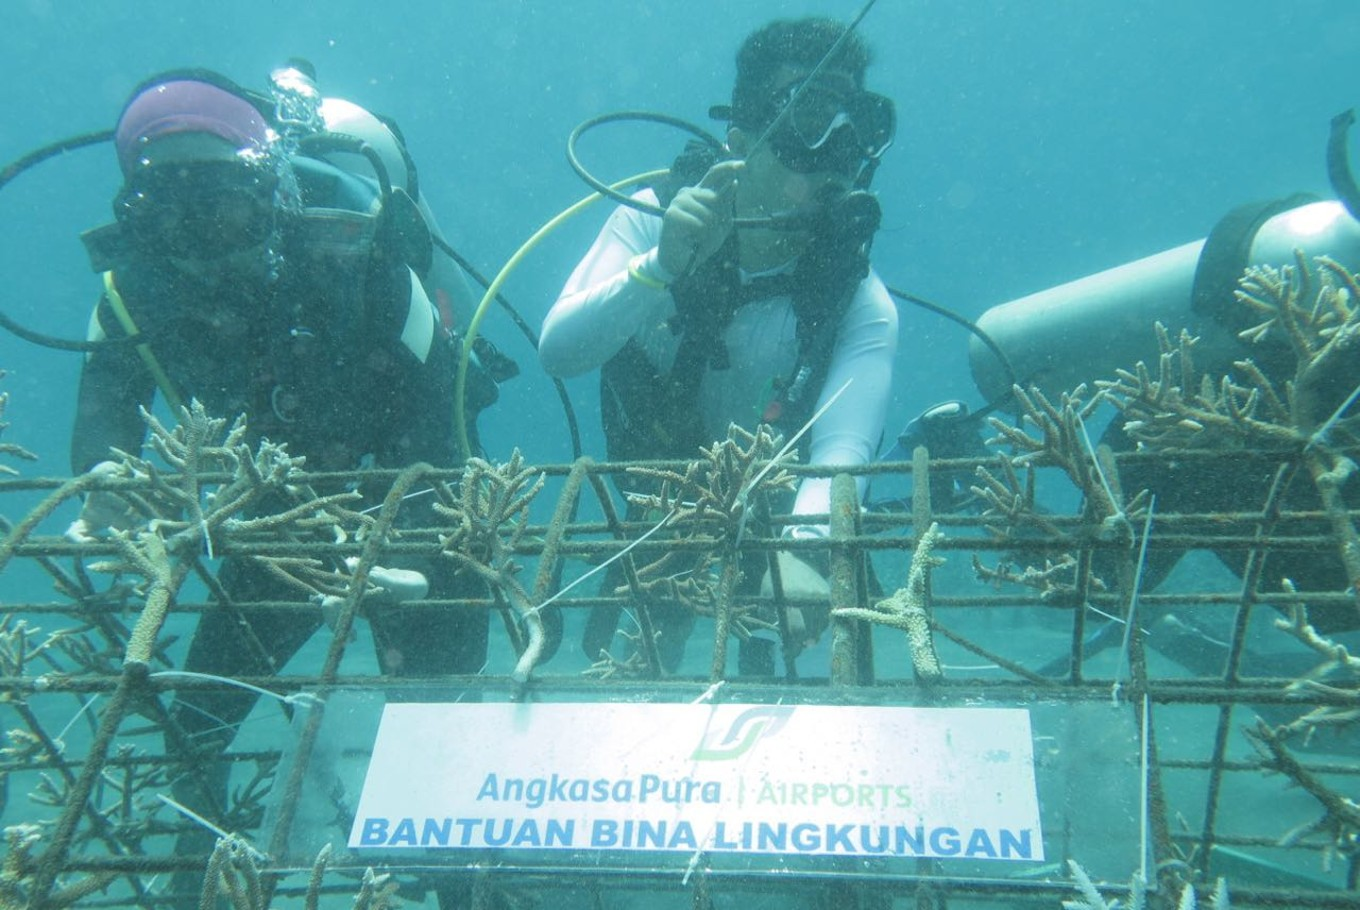 Over one third of Indonesia's coral reefs in bad state: Study